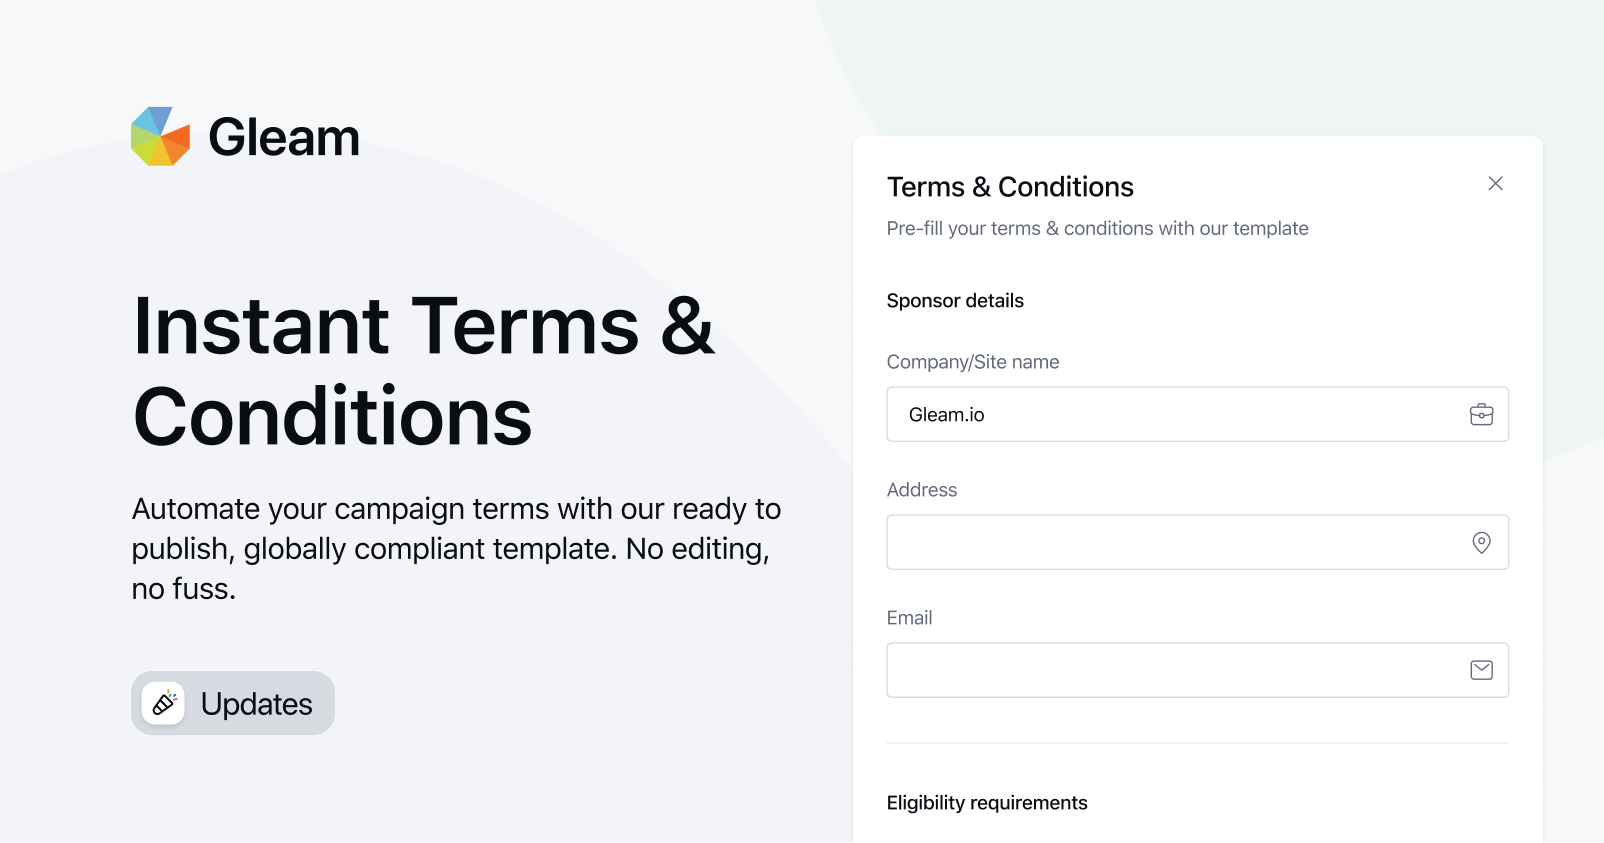 Gleam introduces instant Terms & Conditions feature